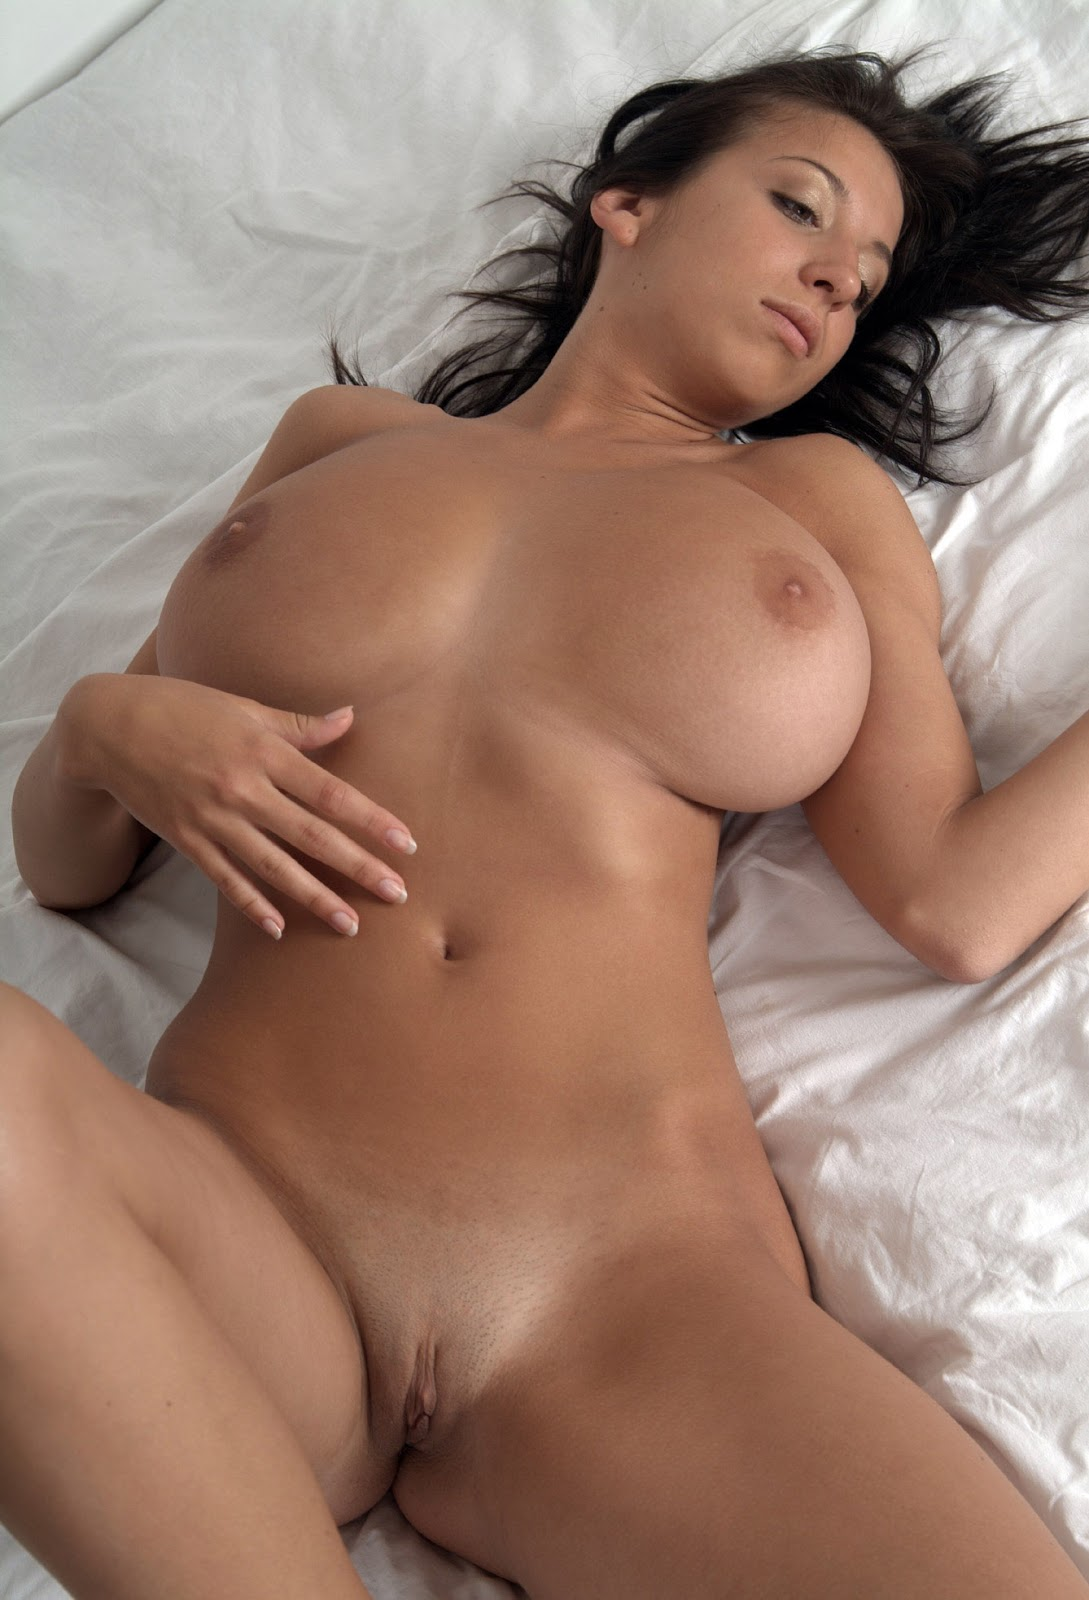 Naked Women Huge Boobs 17